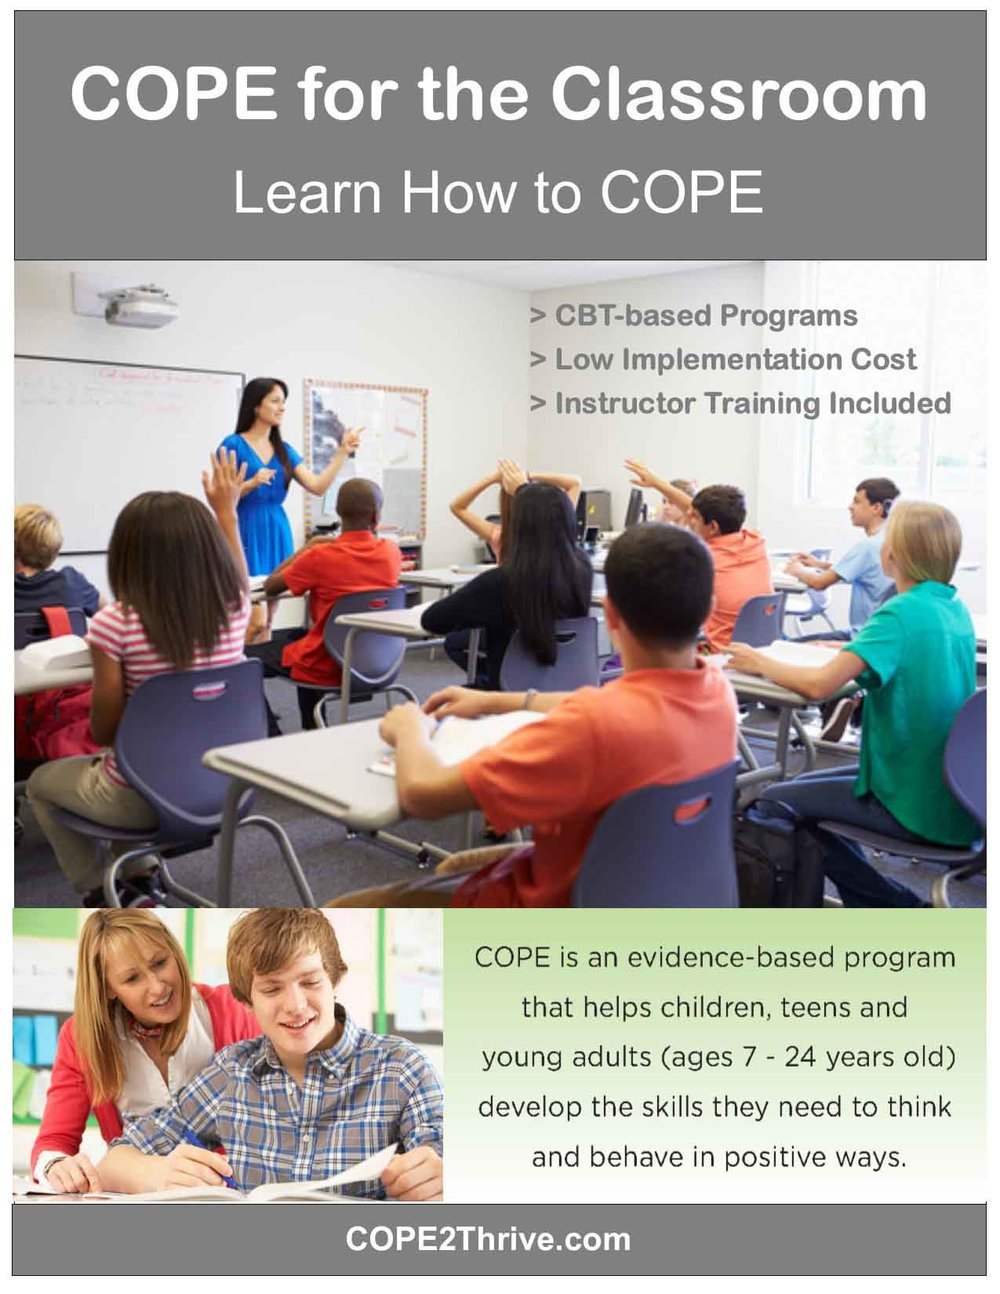 Learn How to COPE Poster - Classroom -2a.jpg